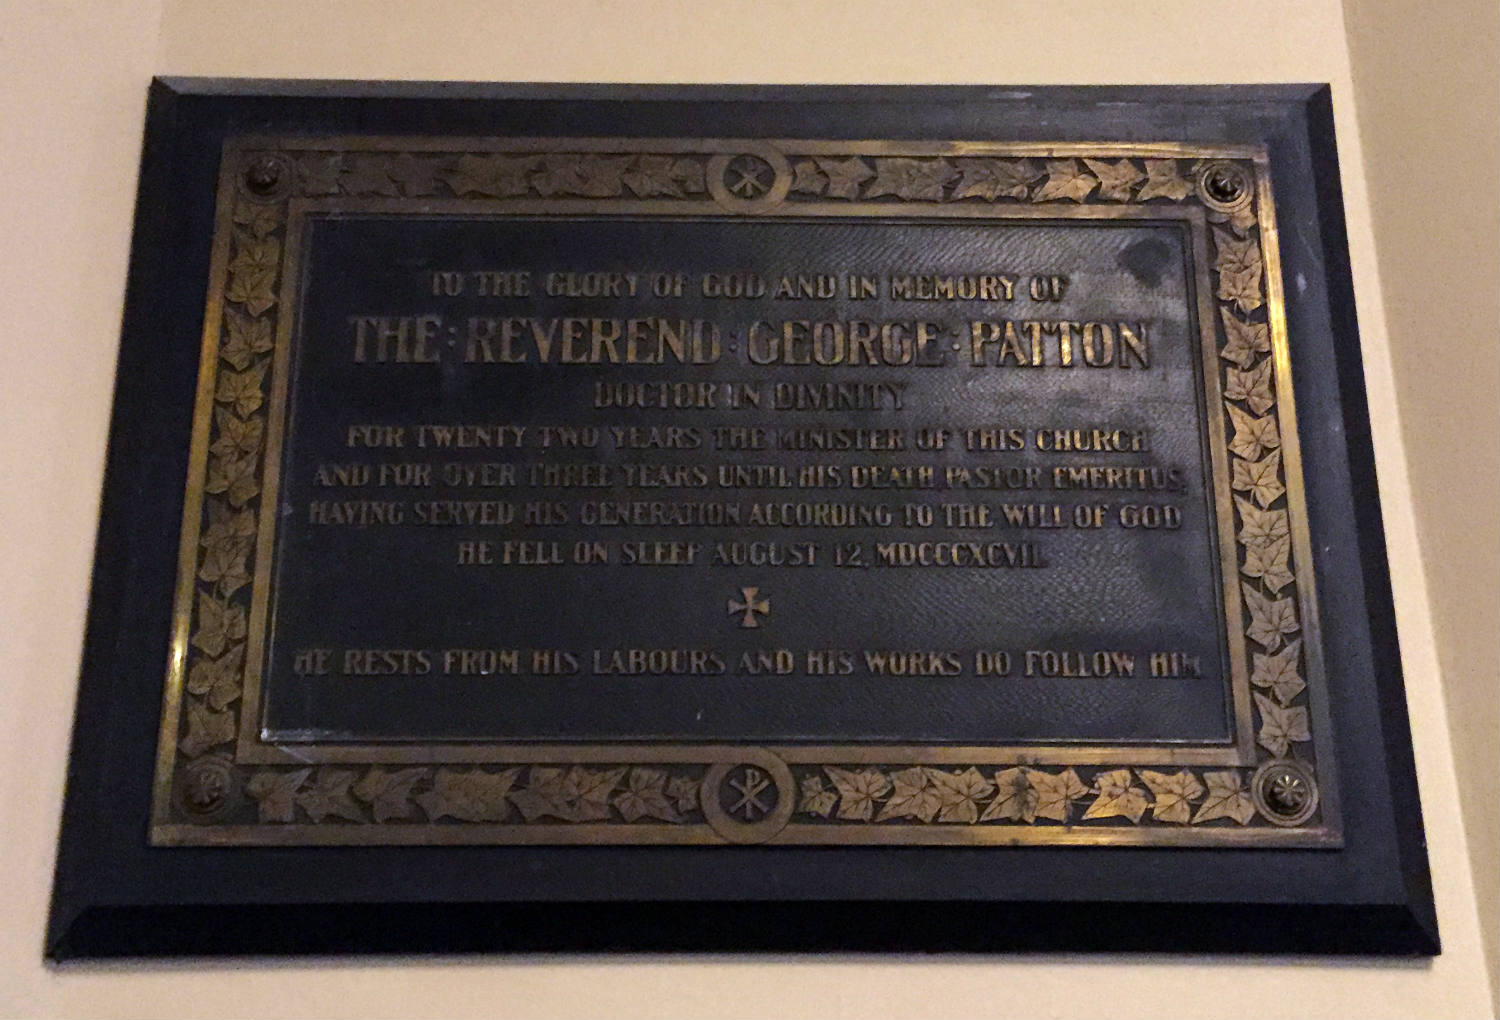 Reverend George Patton Plaque in Third Presbyterian Church in Rochester, NY